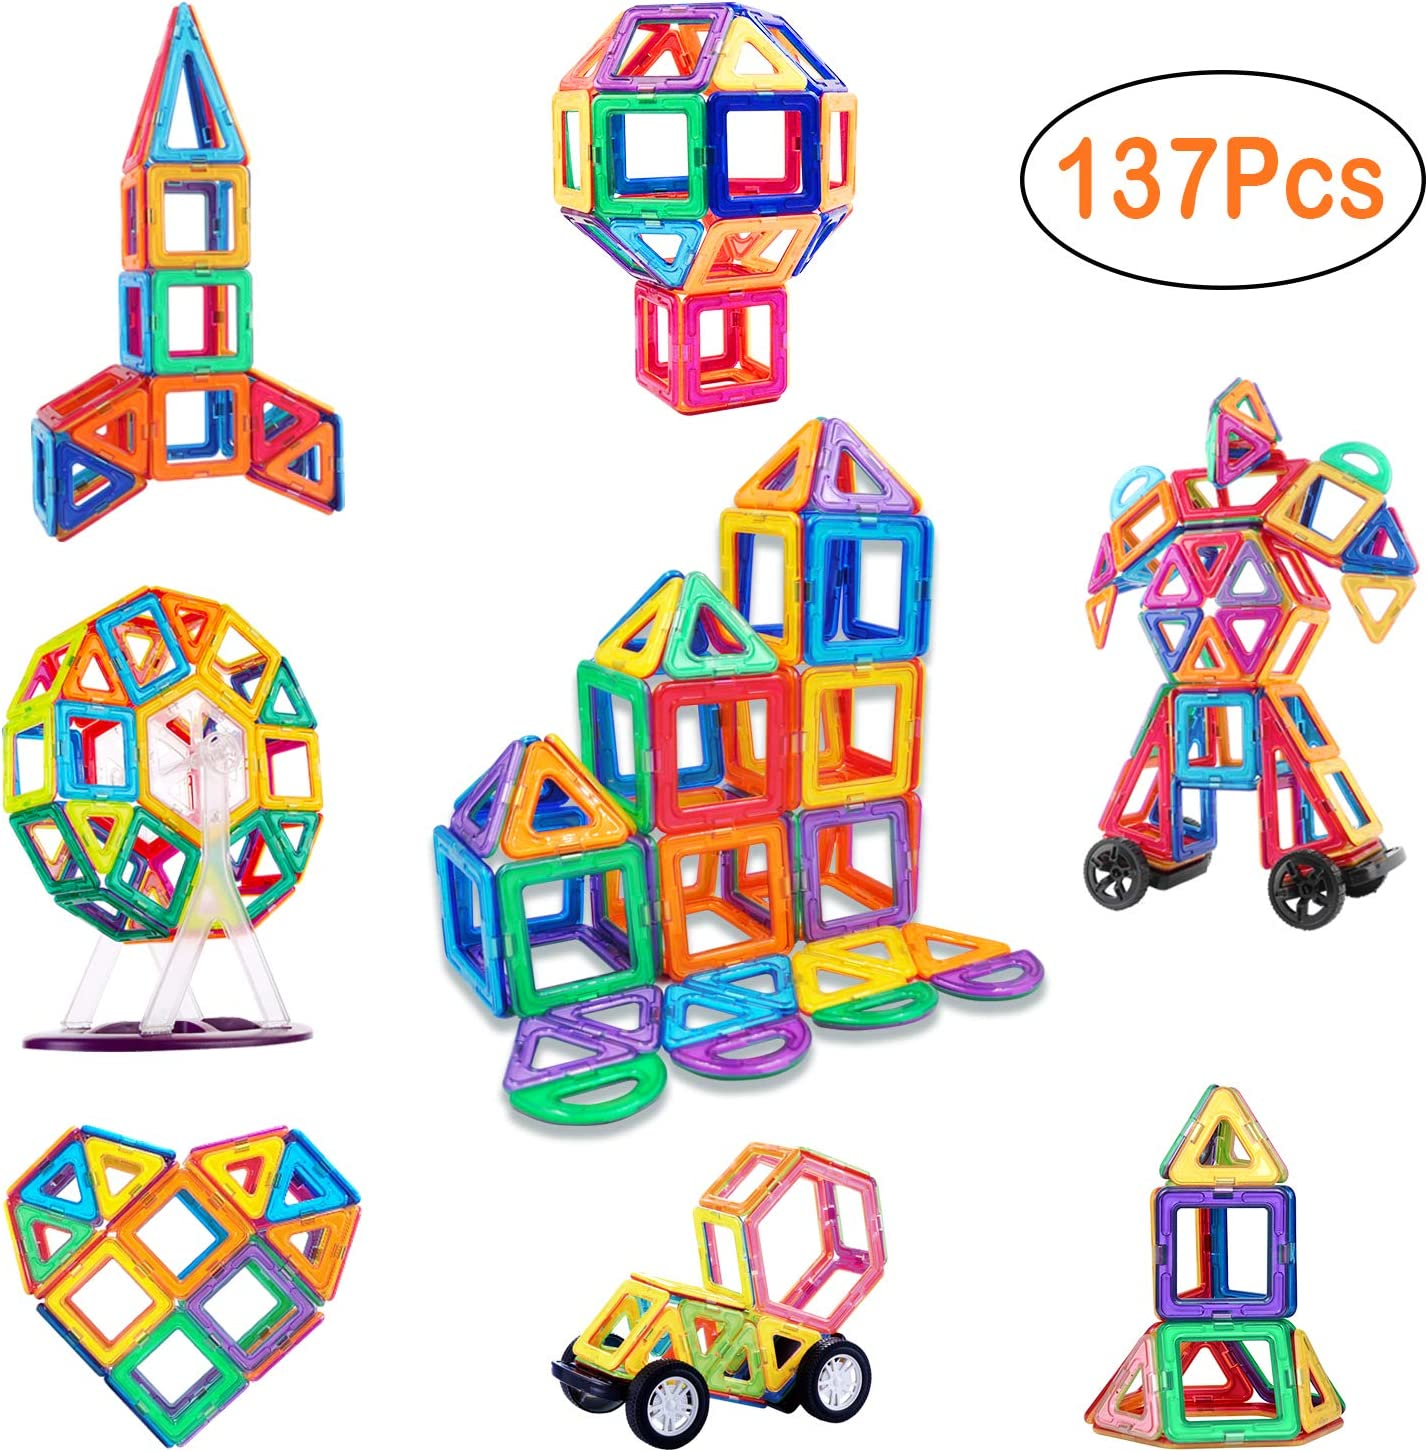 137 Pcs Magnetic Blocks, Magnetic Building Blocks Set for Kids, Magnetic Tiles Educational STEM Construction Kits for Kids, Girls, Boys